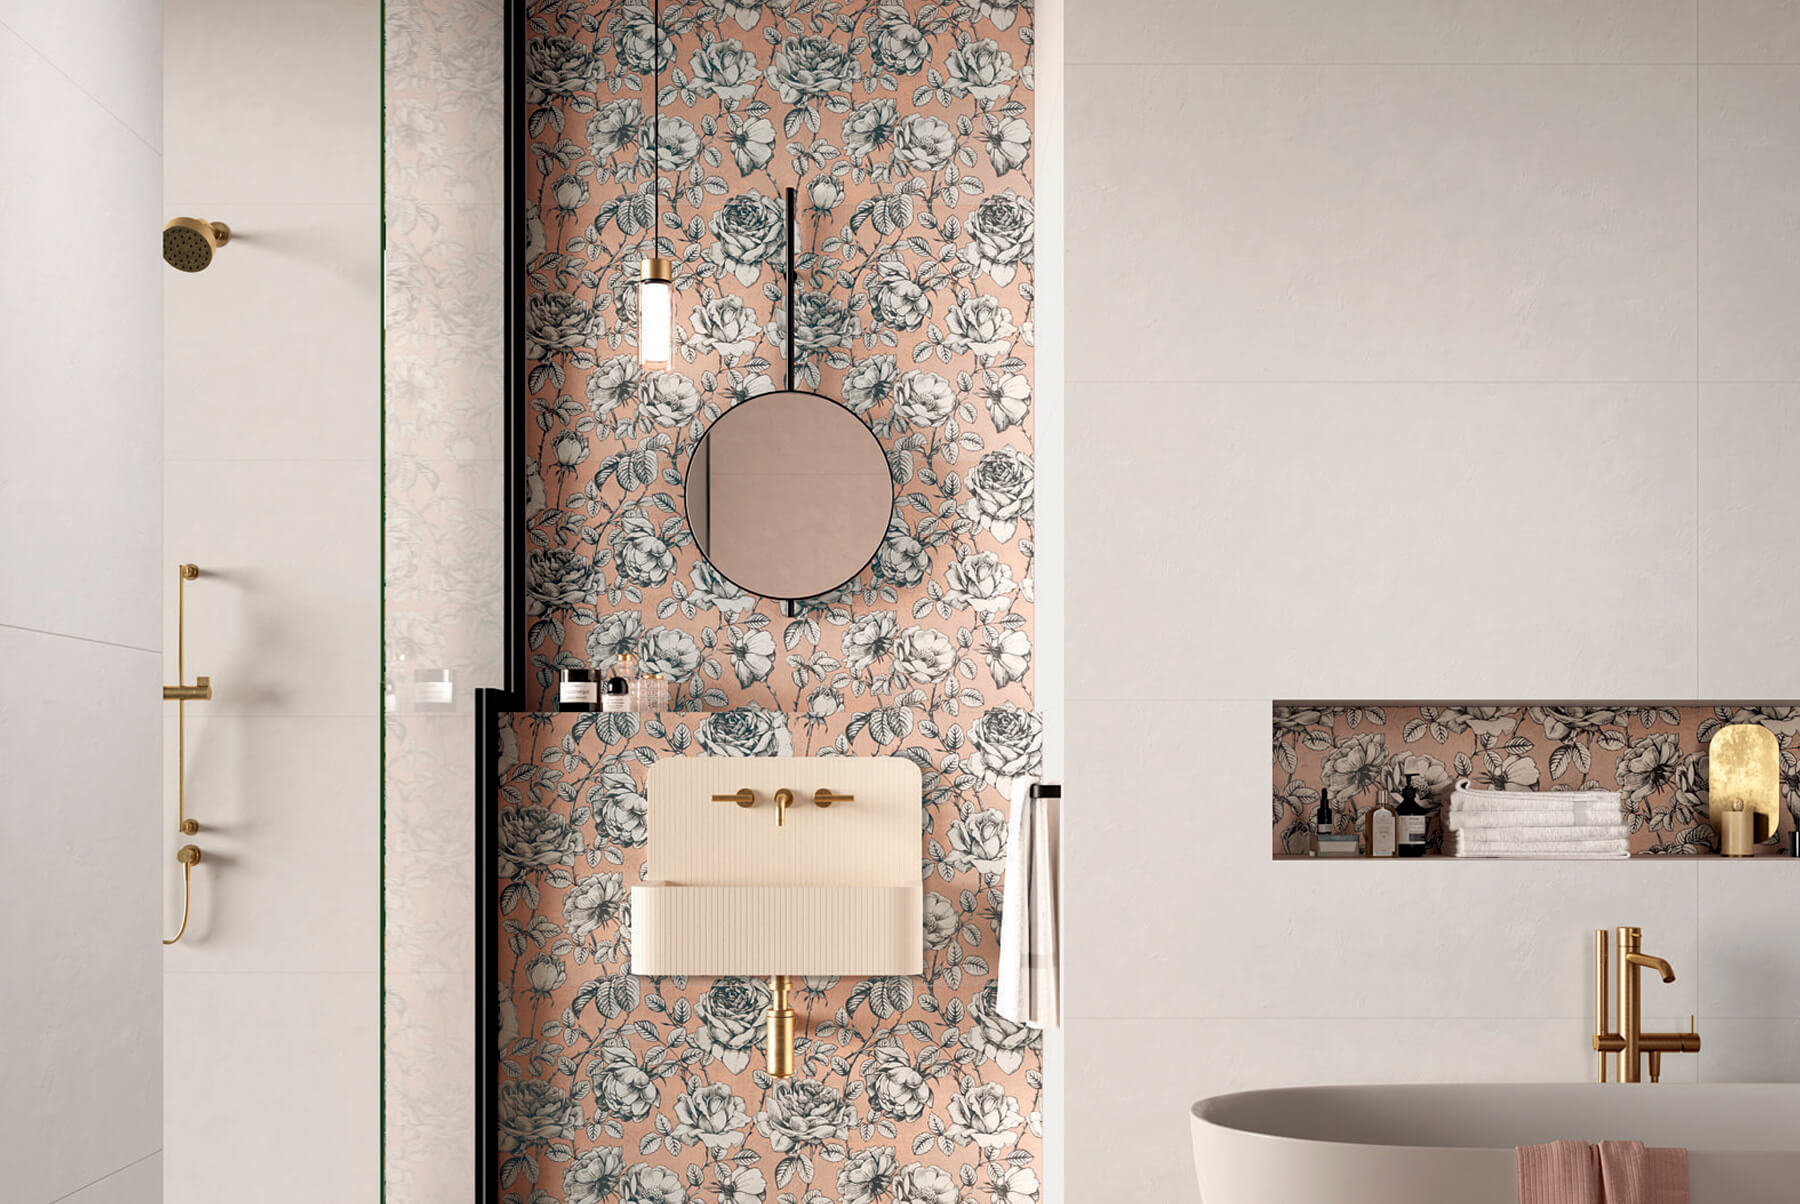 TILES-WIDE-&-STYLE-MINI-INSET-4-1800x1204